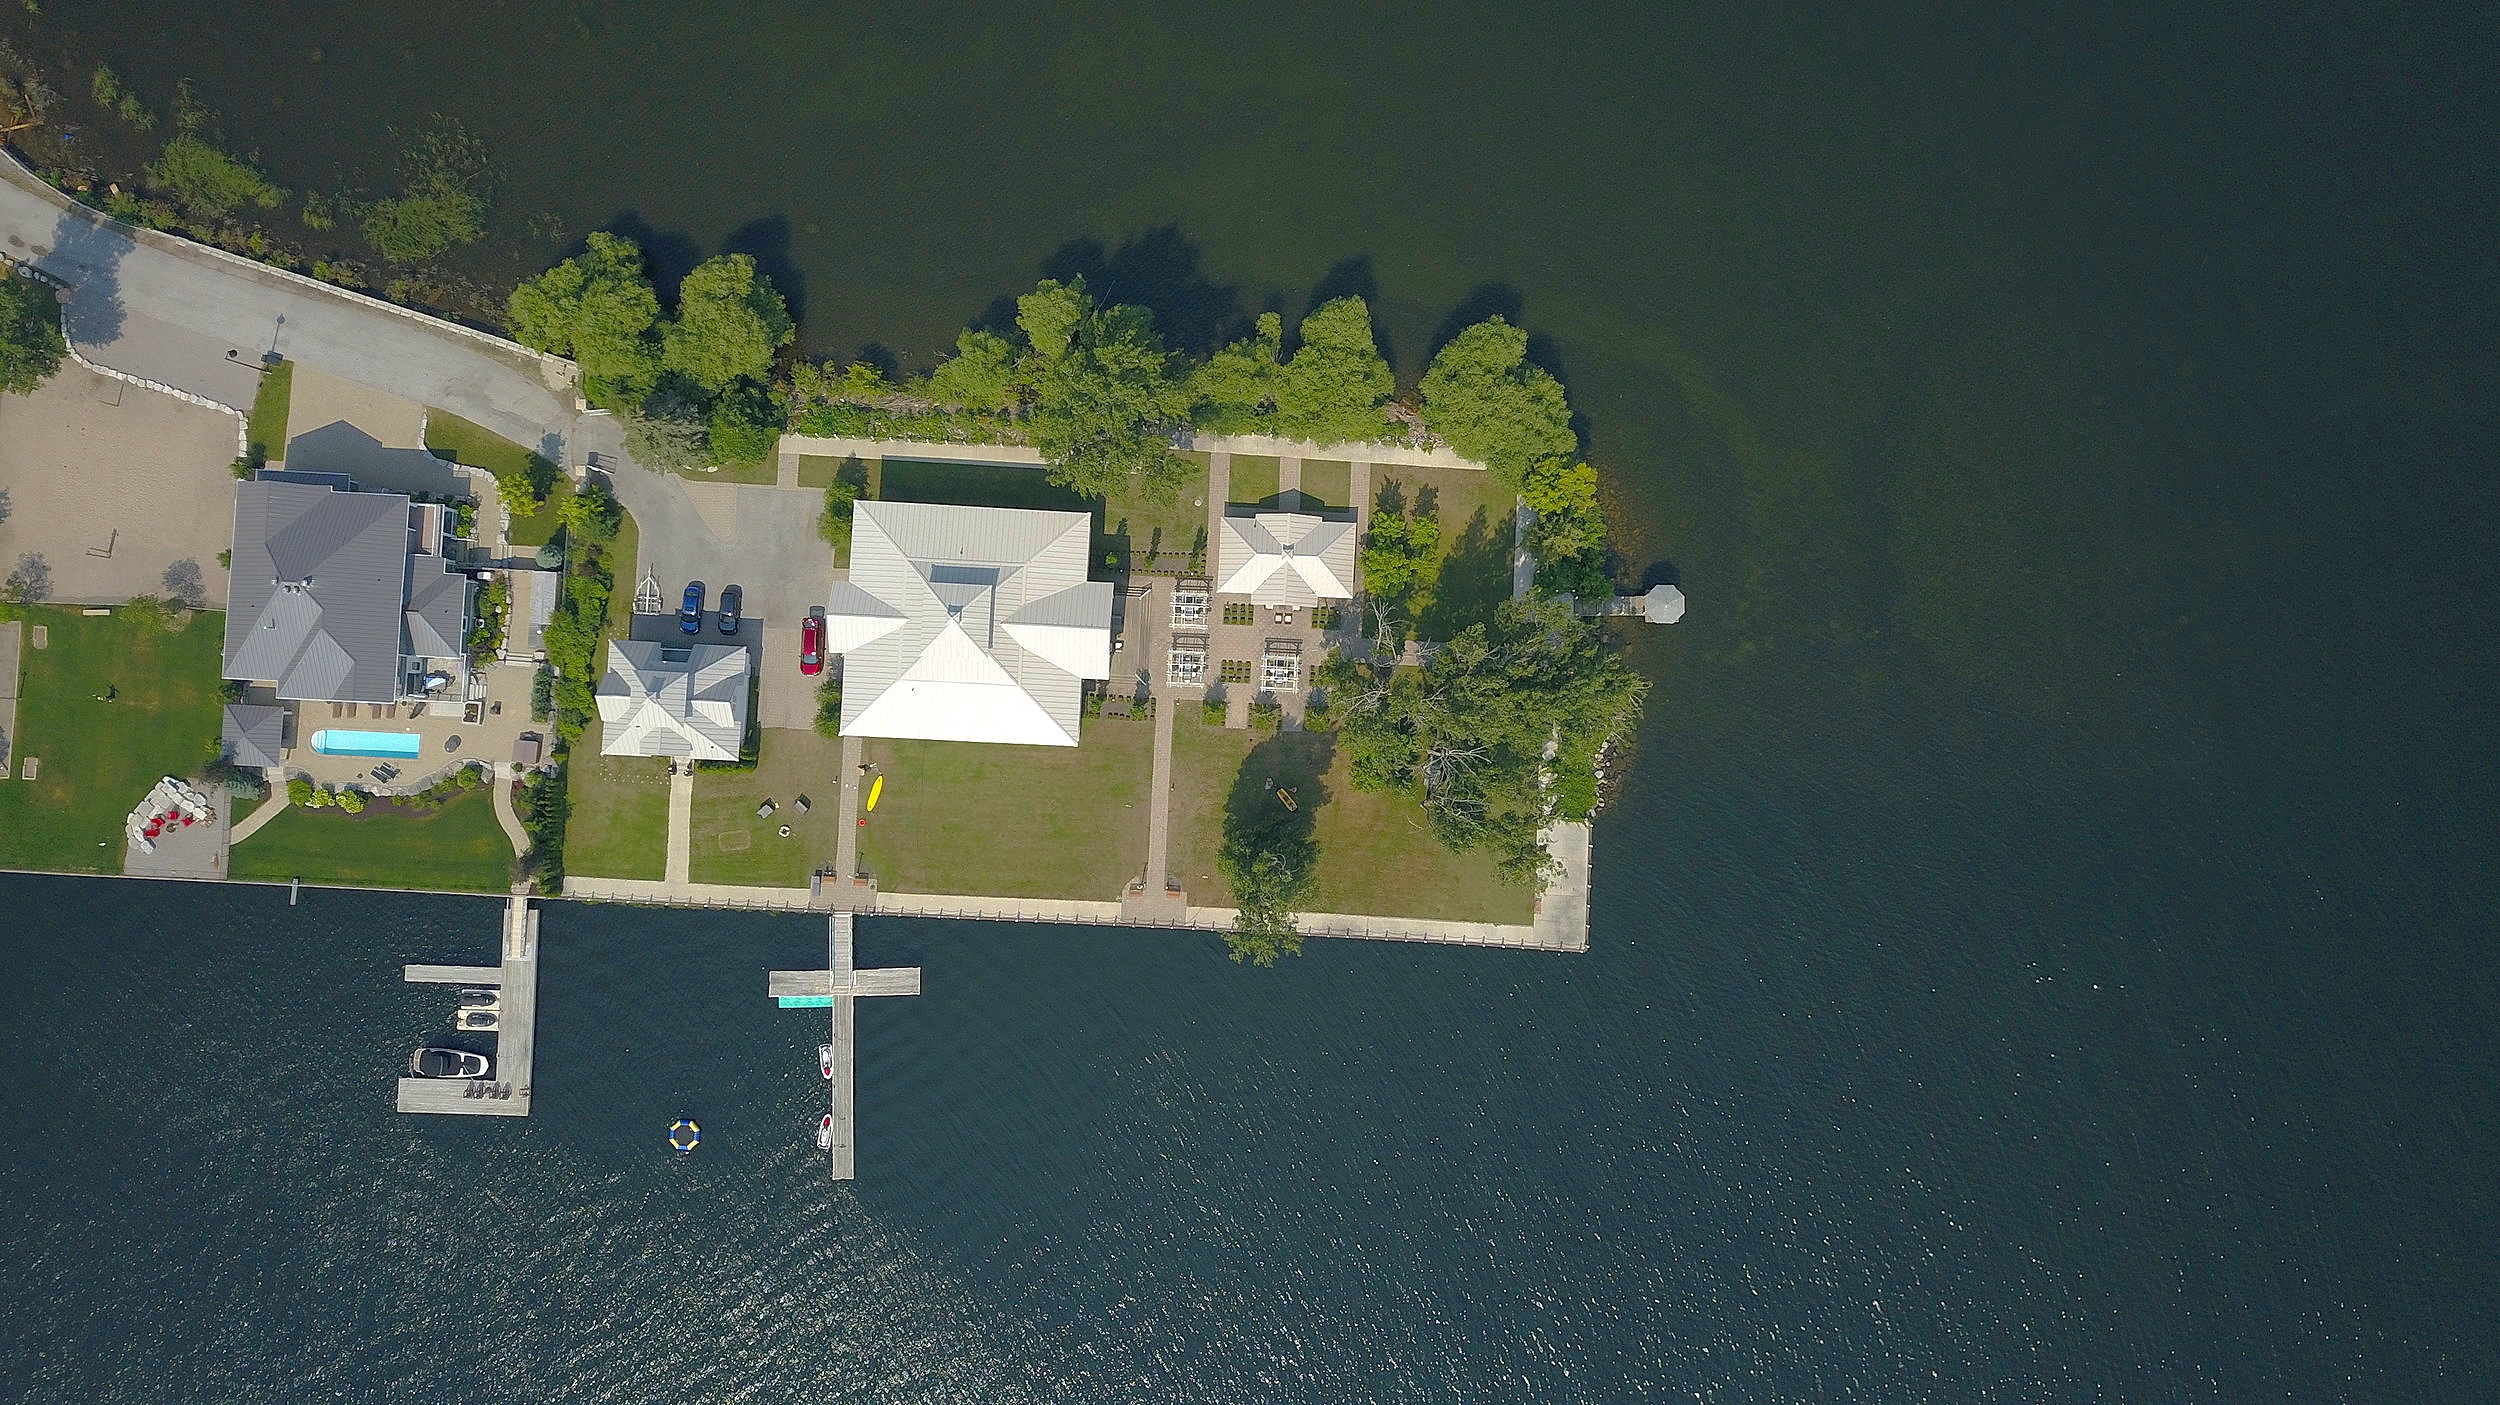 What the cottage looks like from above!